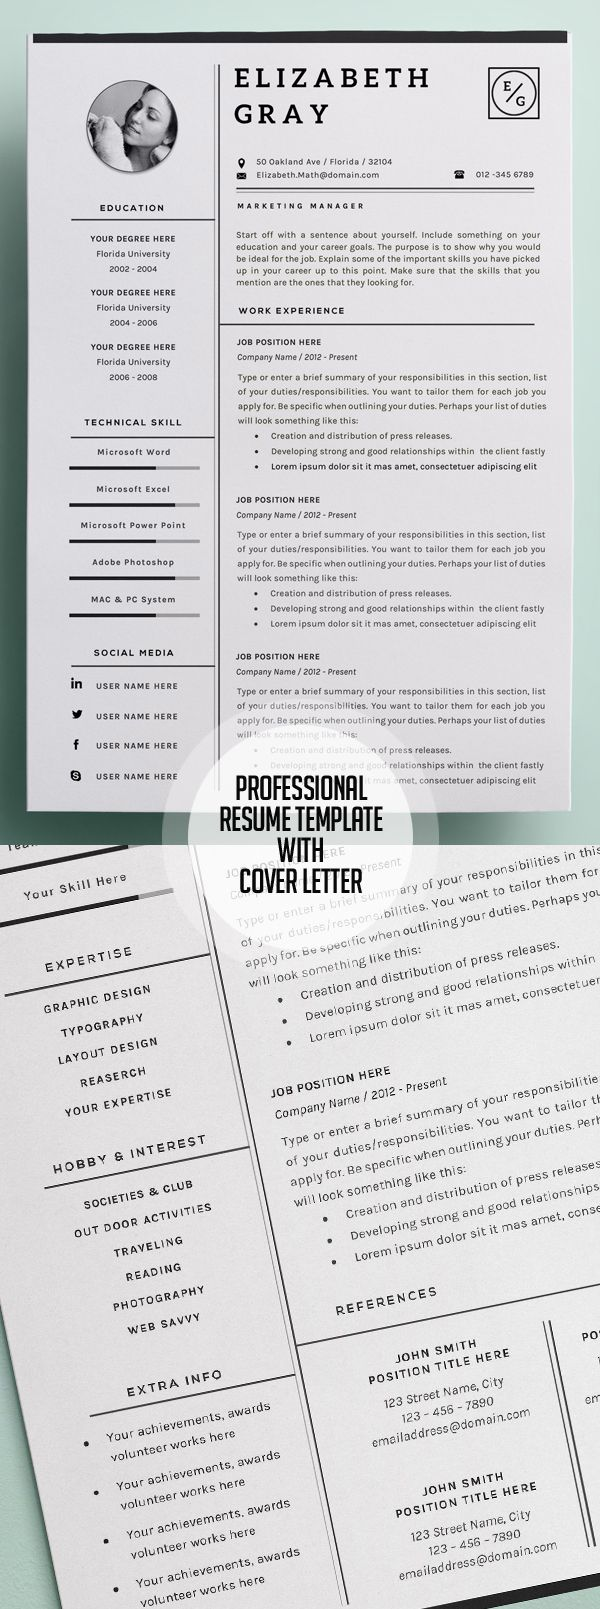 Picnictoimpeachus  Gorgeous  Resume Ideas On Pinterest  Resume Resume Templates And  With Interesting Professional And Modern Resume Template With Page Cover Cvtemplate With Amusing Skills For Resume Customer Service Also Marketing Associate Resume In Addition Quality Control Inspector Resume And Sample Mechanical Engineering Resume As Well As Blank Resume Templates For Microsoft Word Additionally Engineer Resume Example From Pinterestcom With Picnictoimpeachus  Interesting  Resume Ideas On Pinterest  Resume Resume Templates And  With Amusing Professional And Modern Resume Template With Page Cover Cvtemplate And Gorgeous Skills For Resume Customer Service Also Marketing Associate Resume In Addition Quality Control Inspector Resume From Pinterestcom